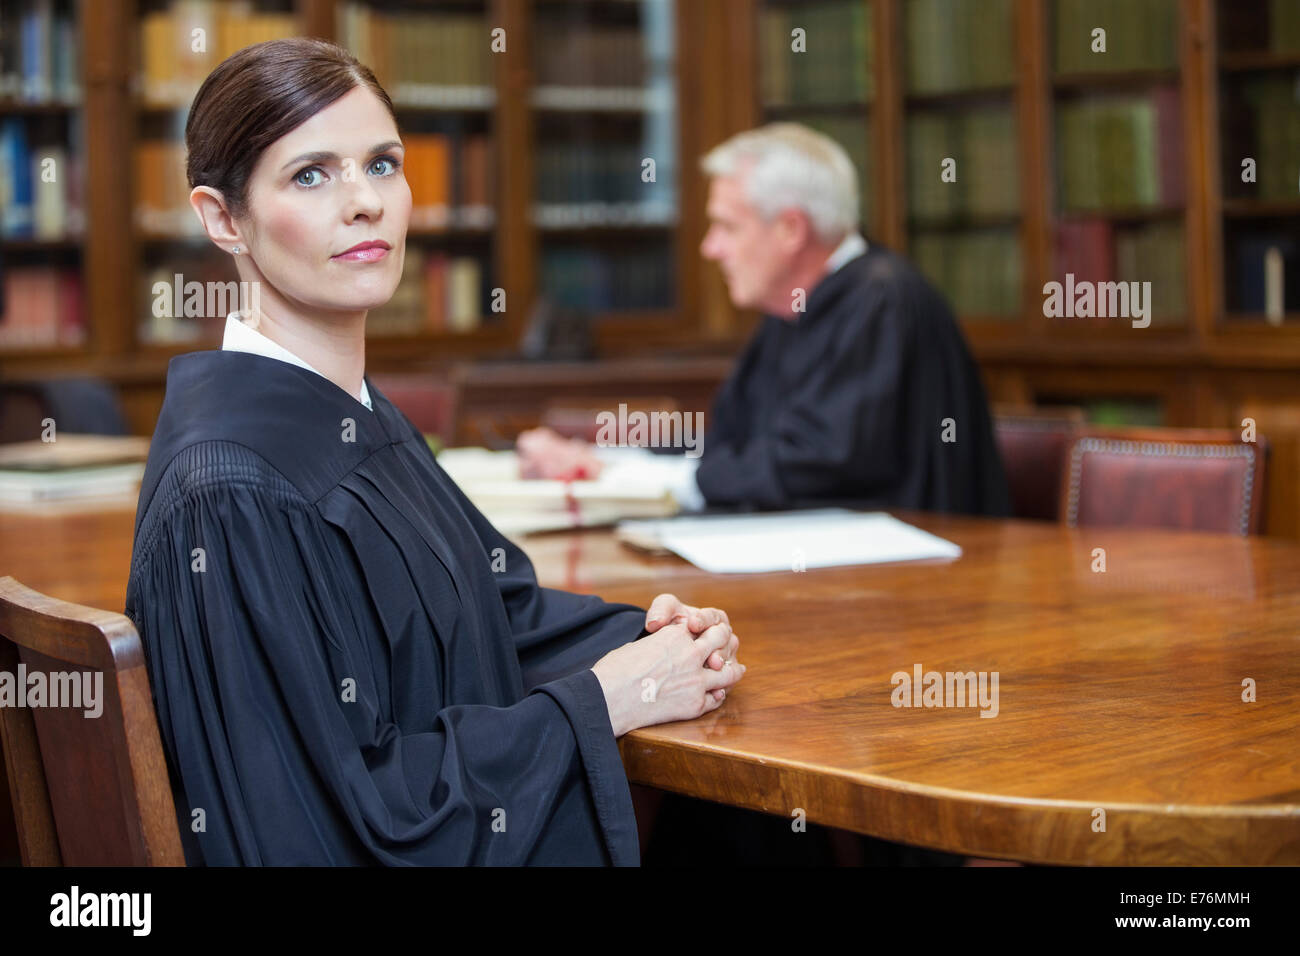 Lawyer sitting at meeting table in chambers - Stock Image